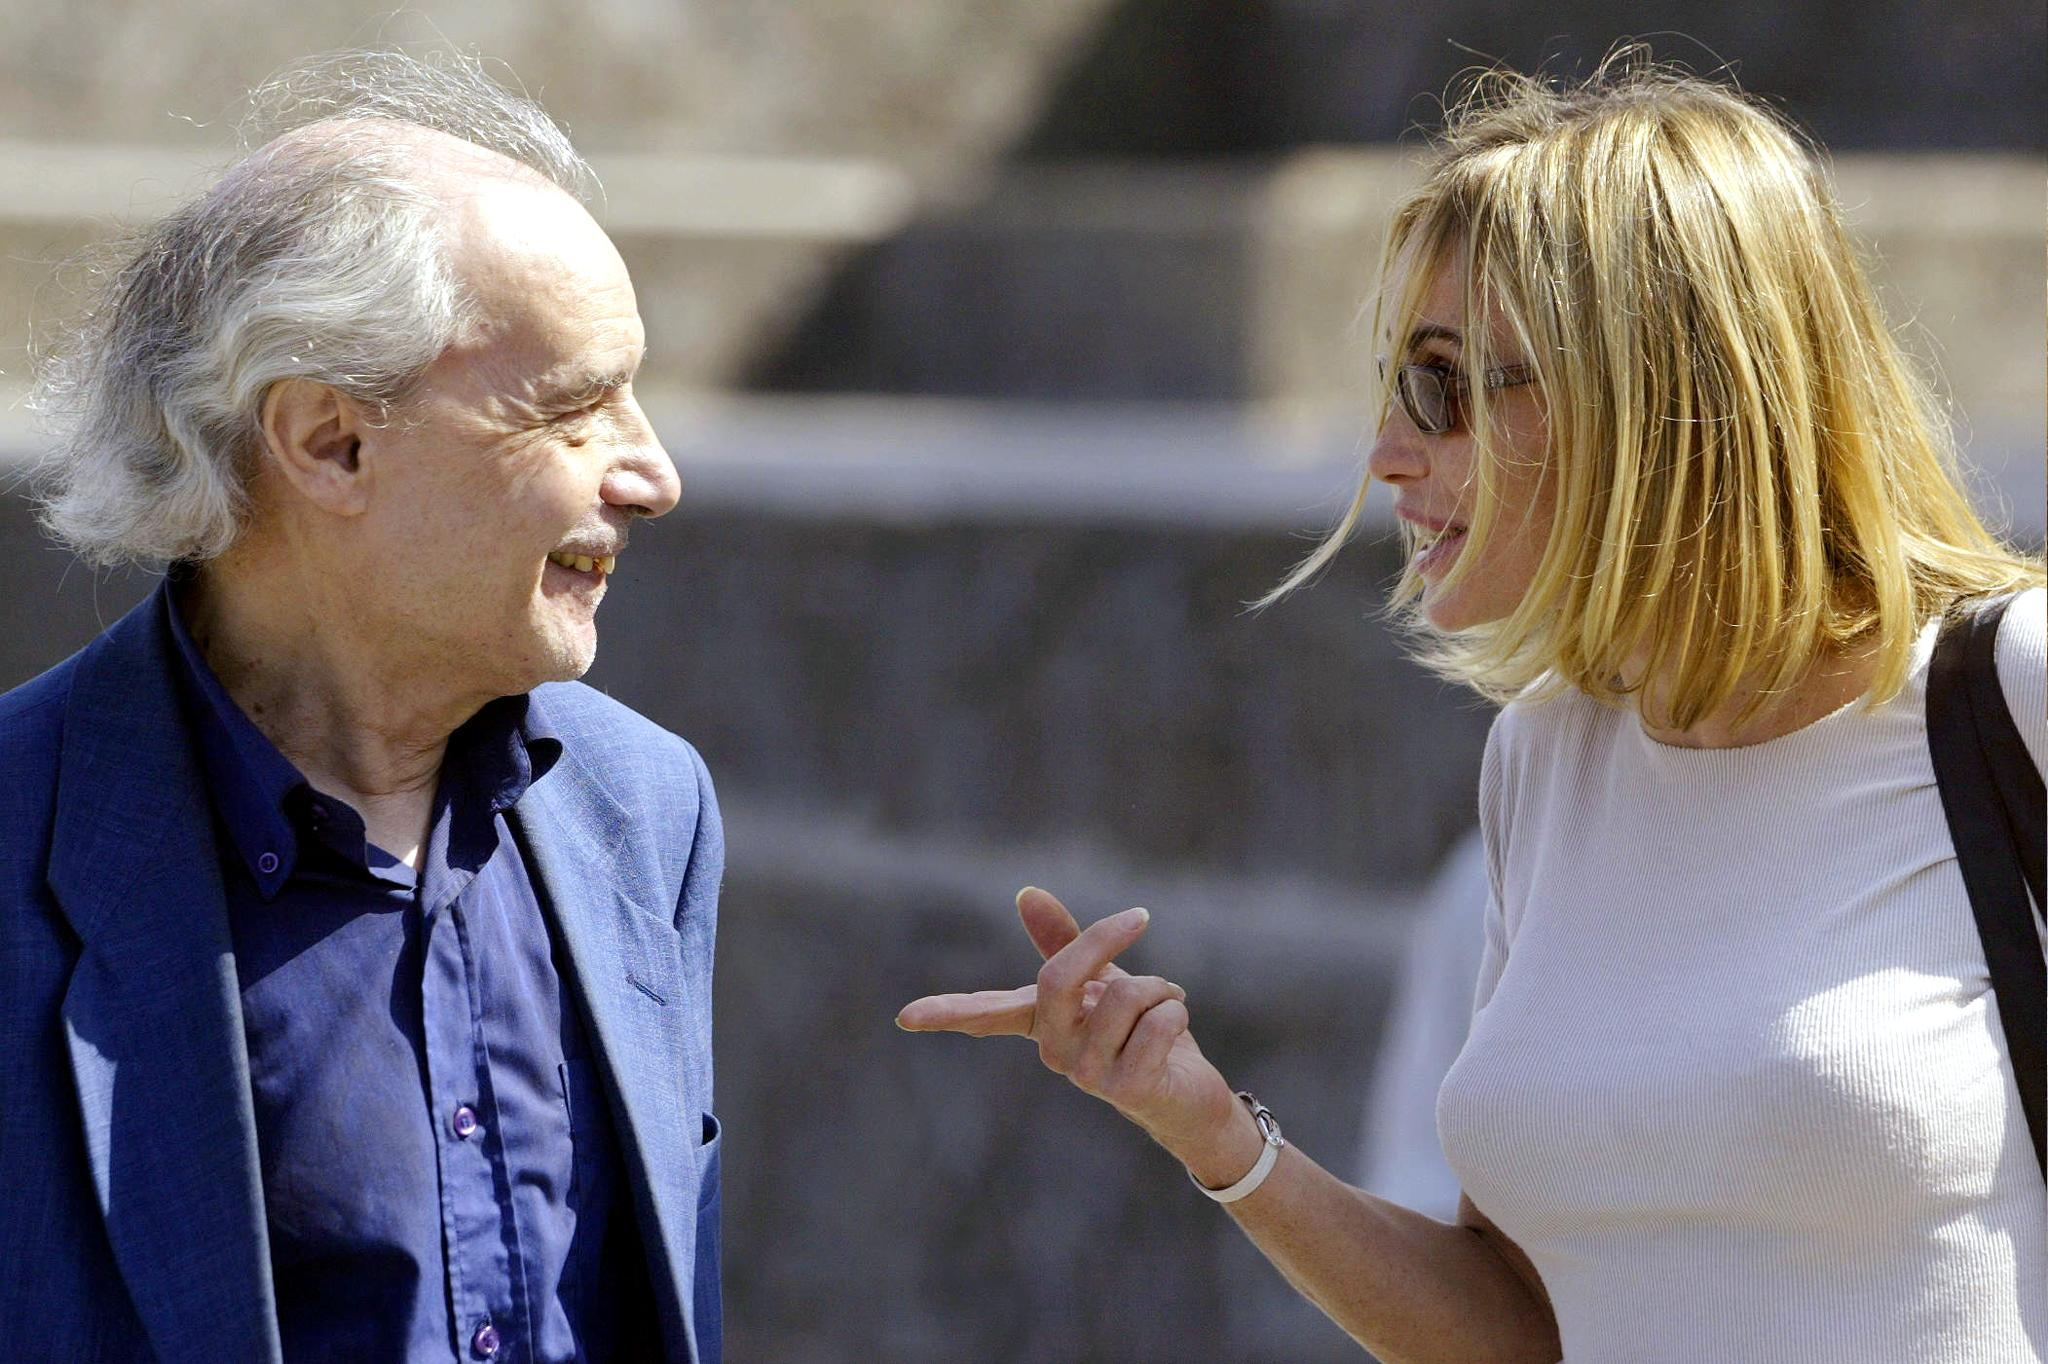 Emmanuelle Béart and Jacques Rivette at an event for Histoire de Marie et Julien (2003)